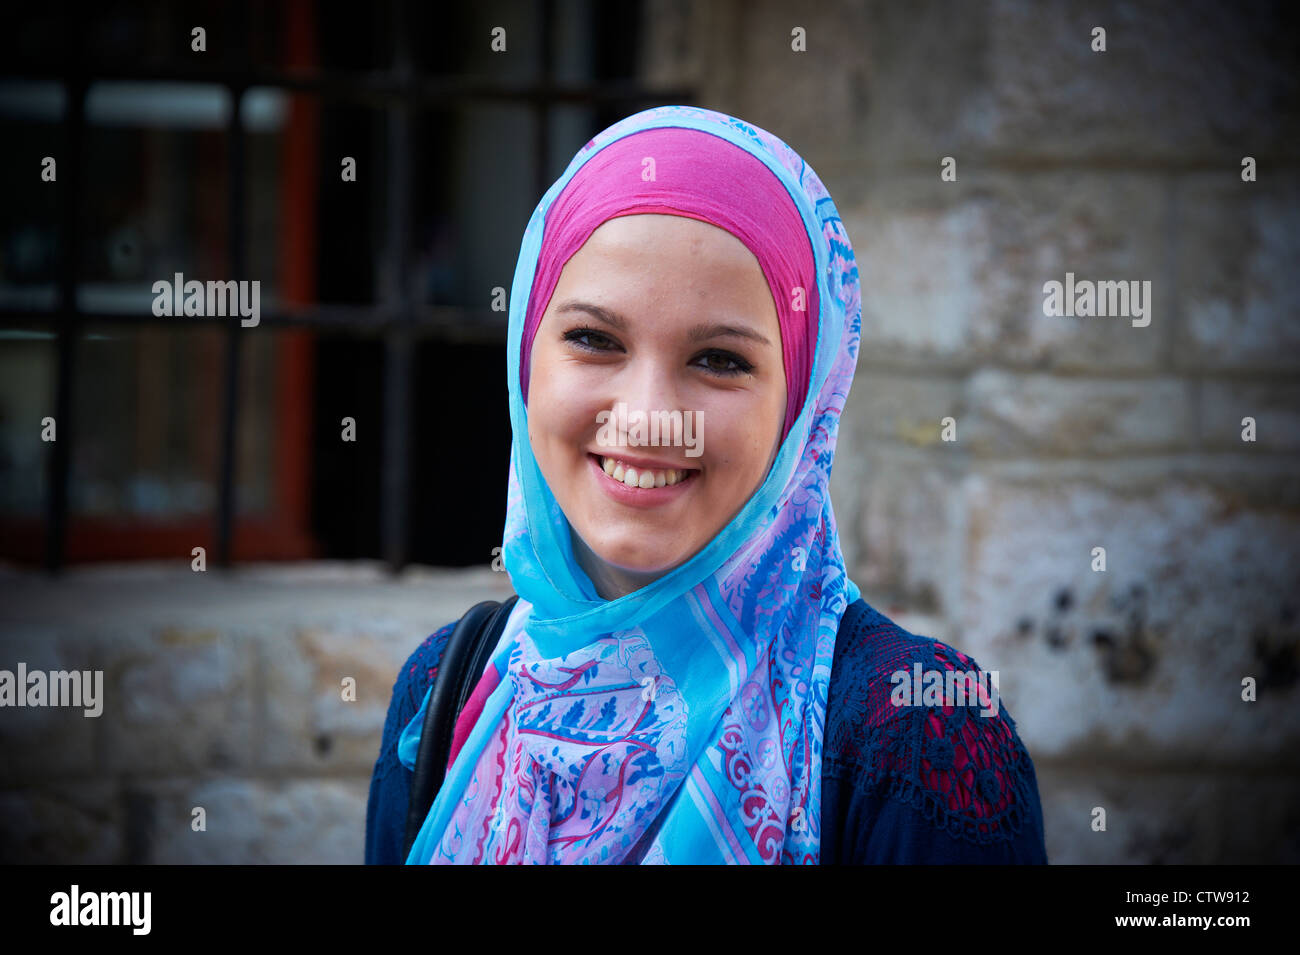 muslim single women in orchard So when it comes to booking the perfect hotel, vacation rental, resort, apartment, guest house or treehouse – we've got you covered.